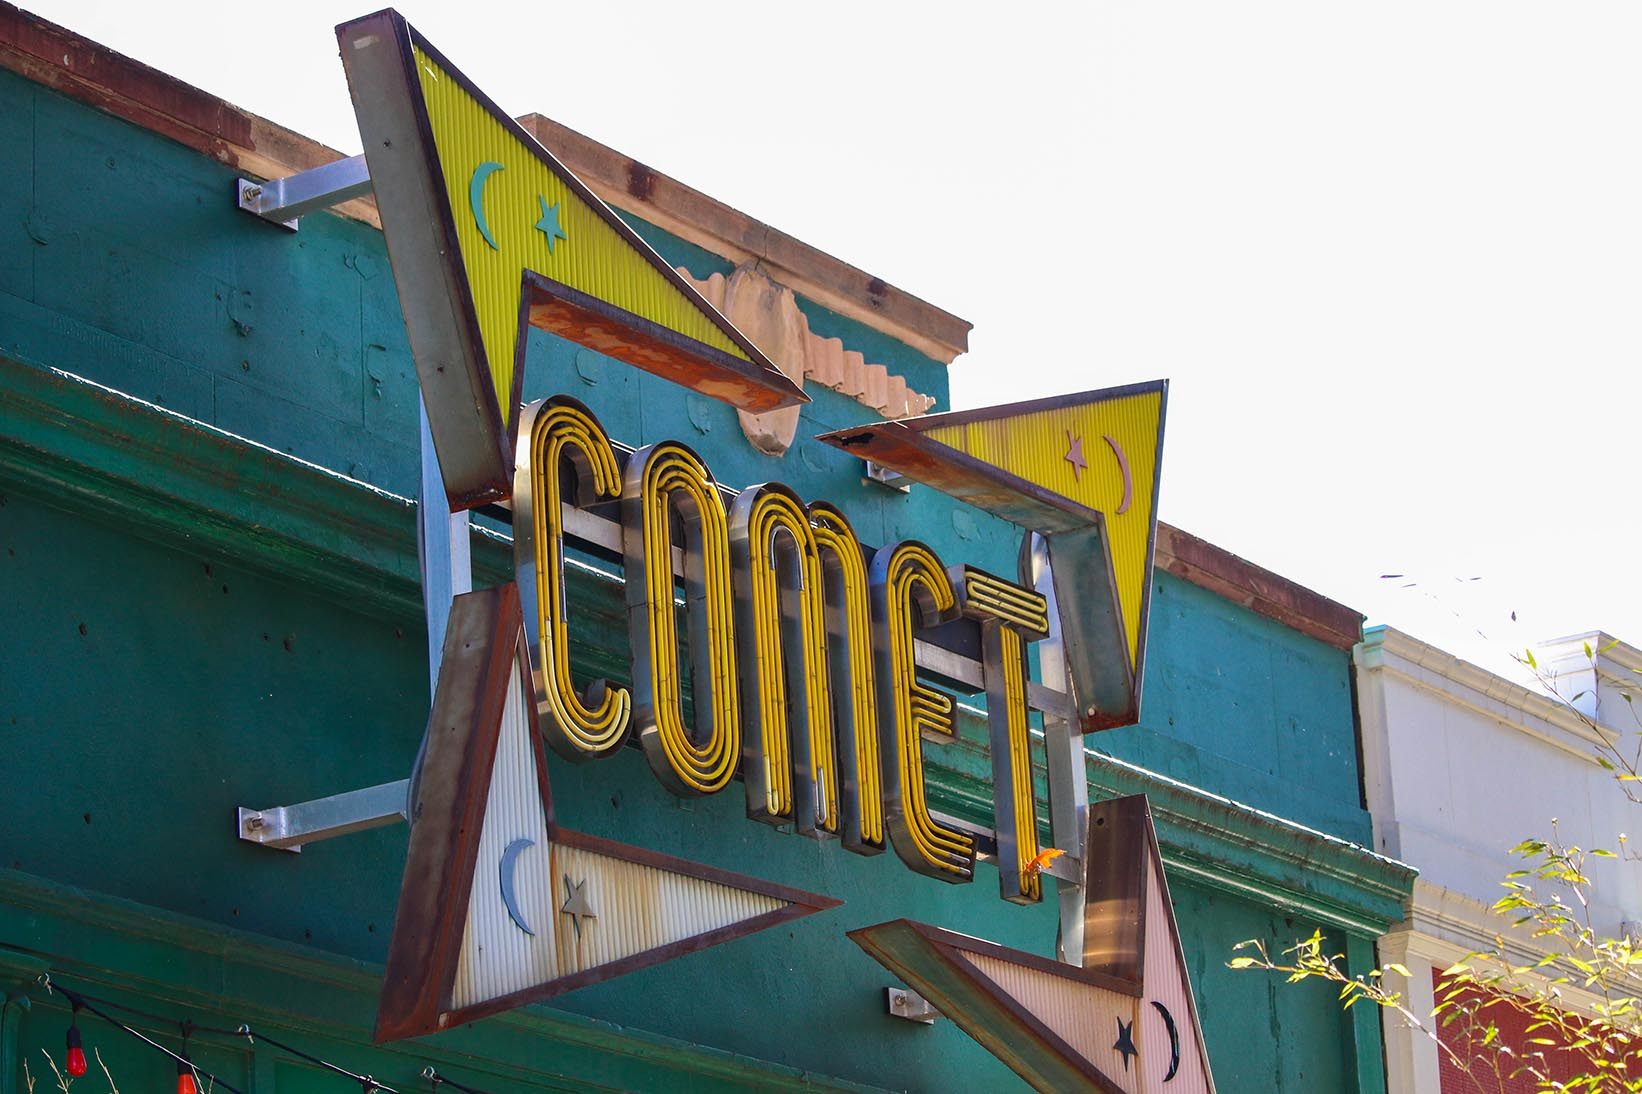 Comet in Chevy Chase, Washington, DC